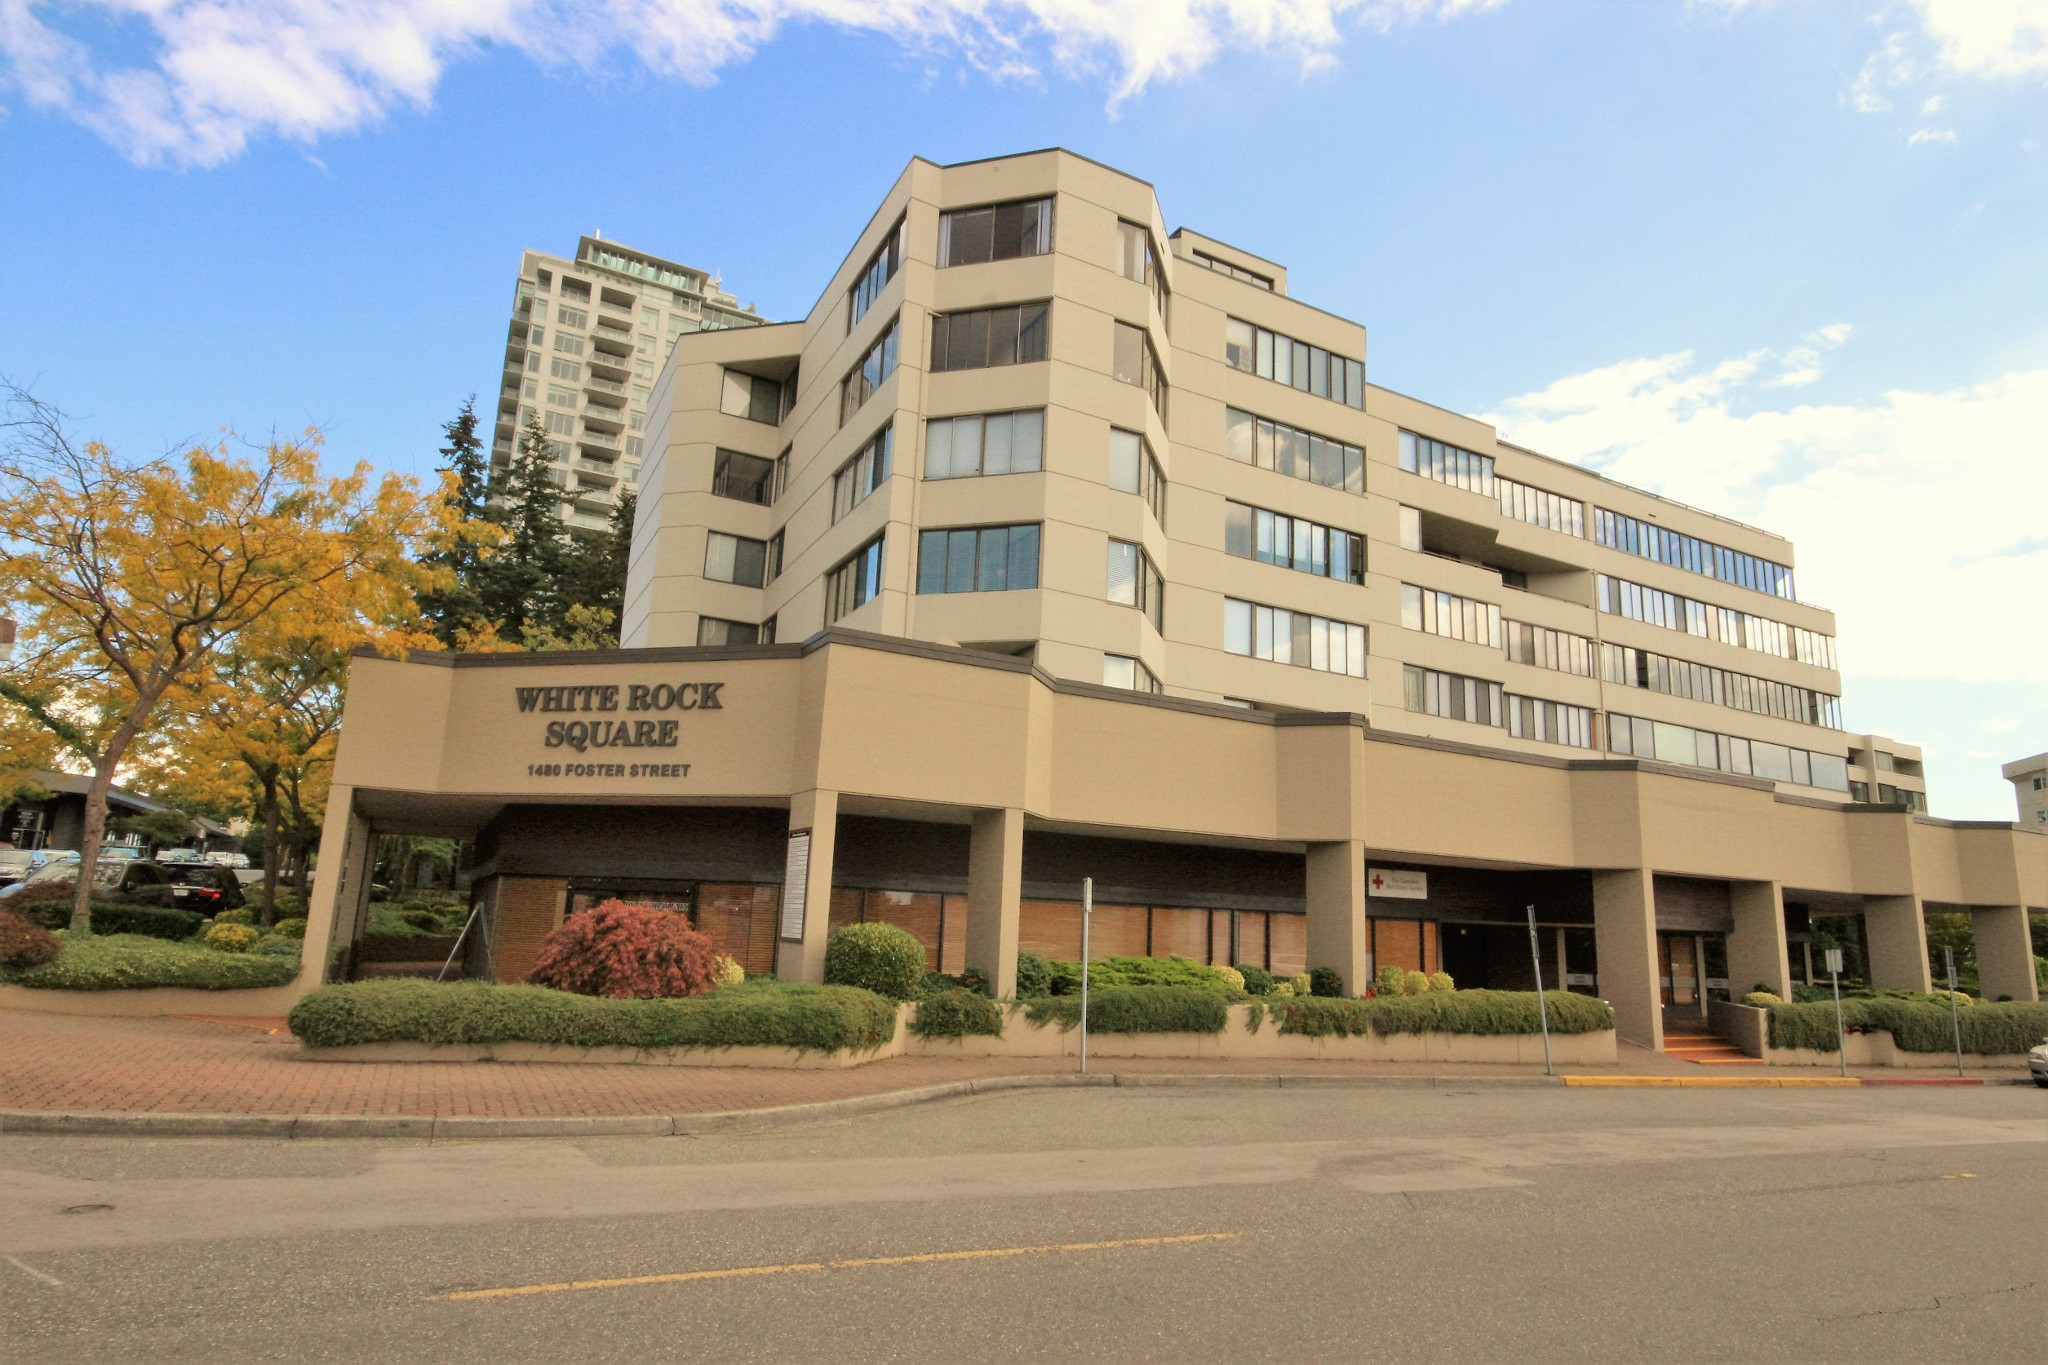 Main Photo: 506 - 1480 Foster St: White Rock Condo for sale (South Surrey White Rock)  : MLS®# R2117828